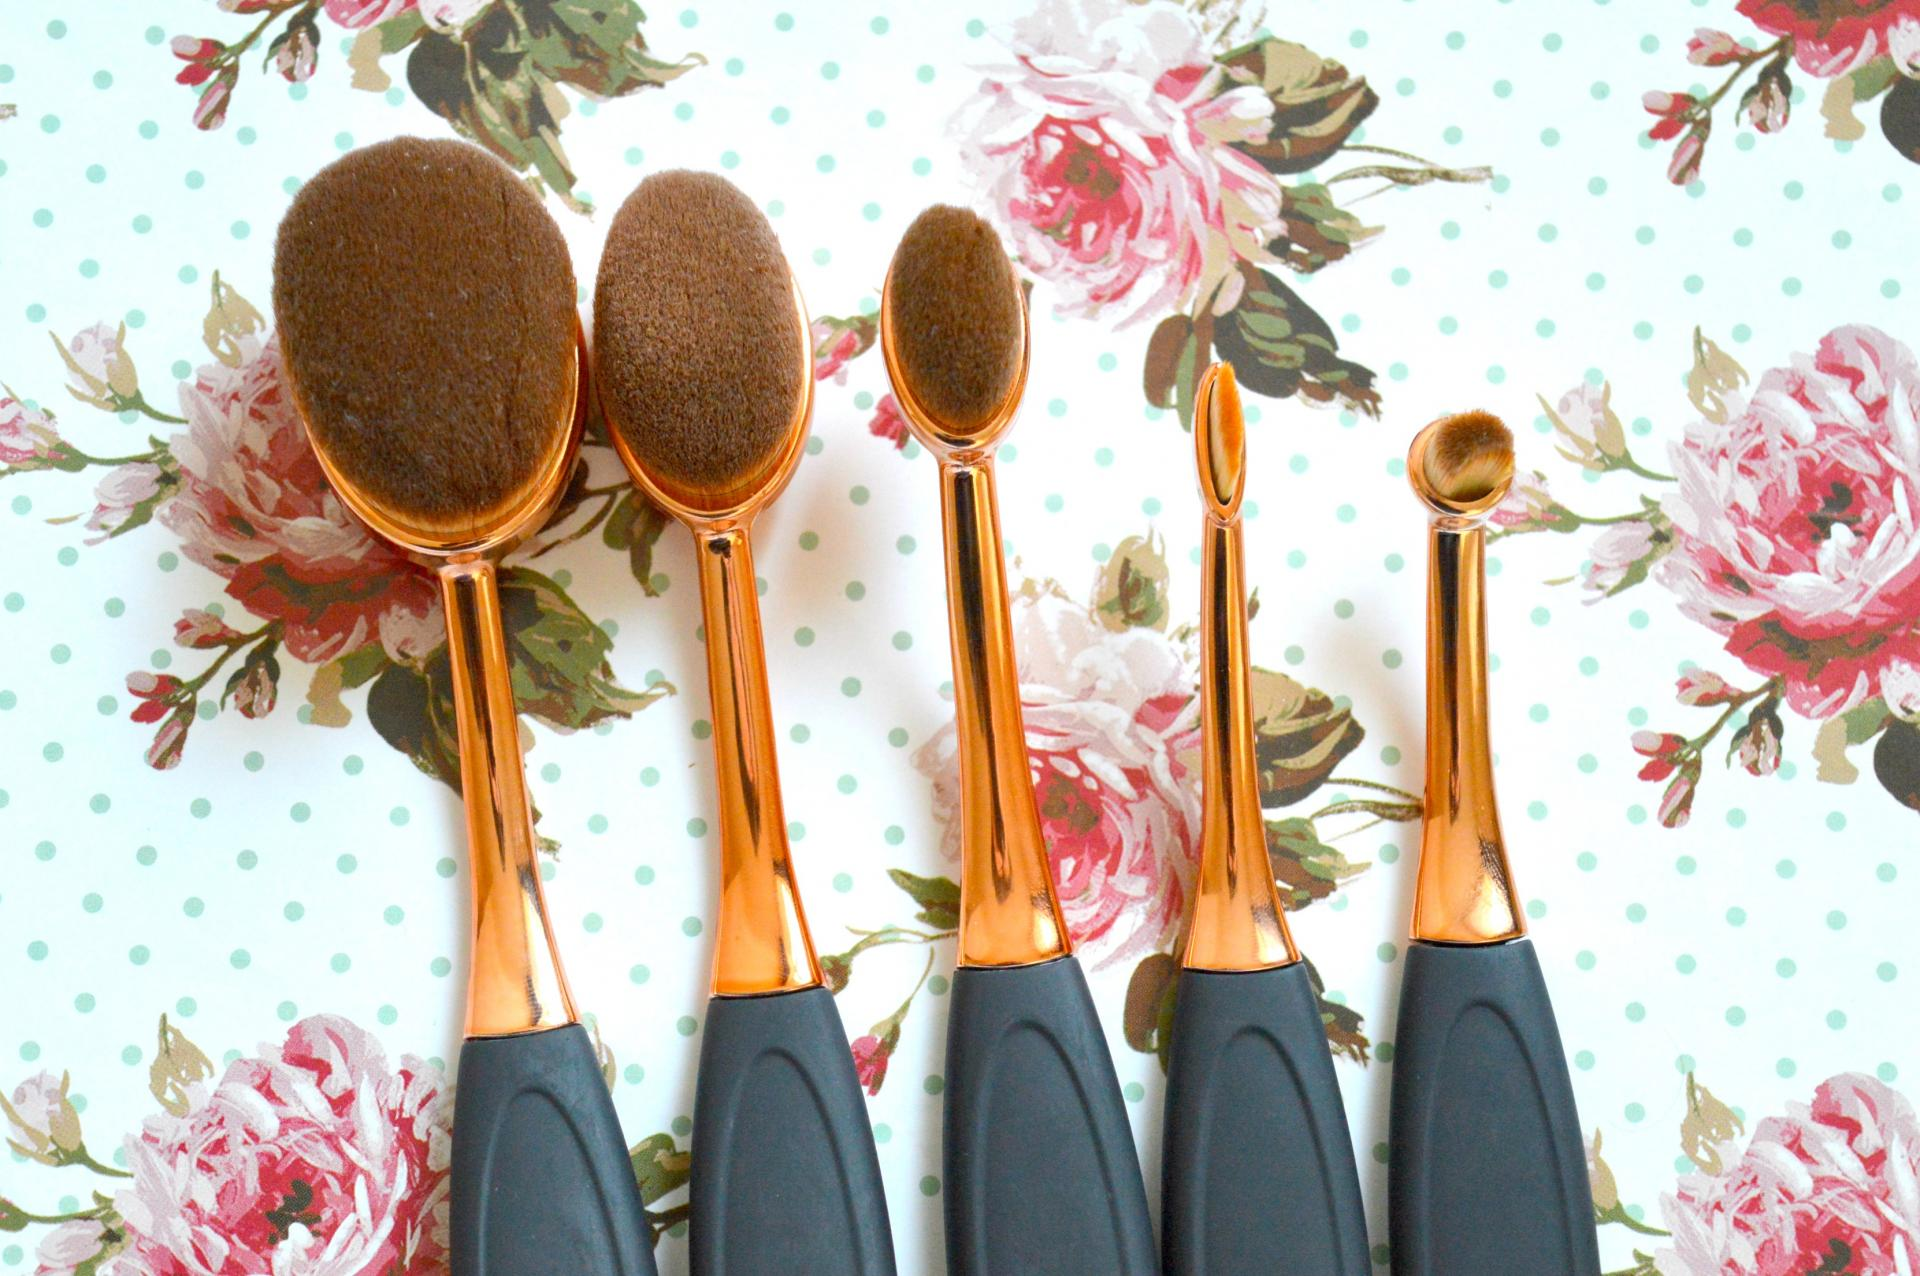 Affordable Rose Gold Oval Makeup Brushes